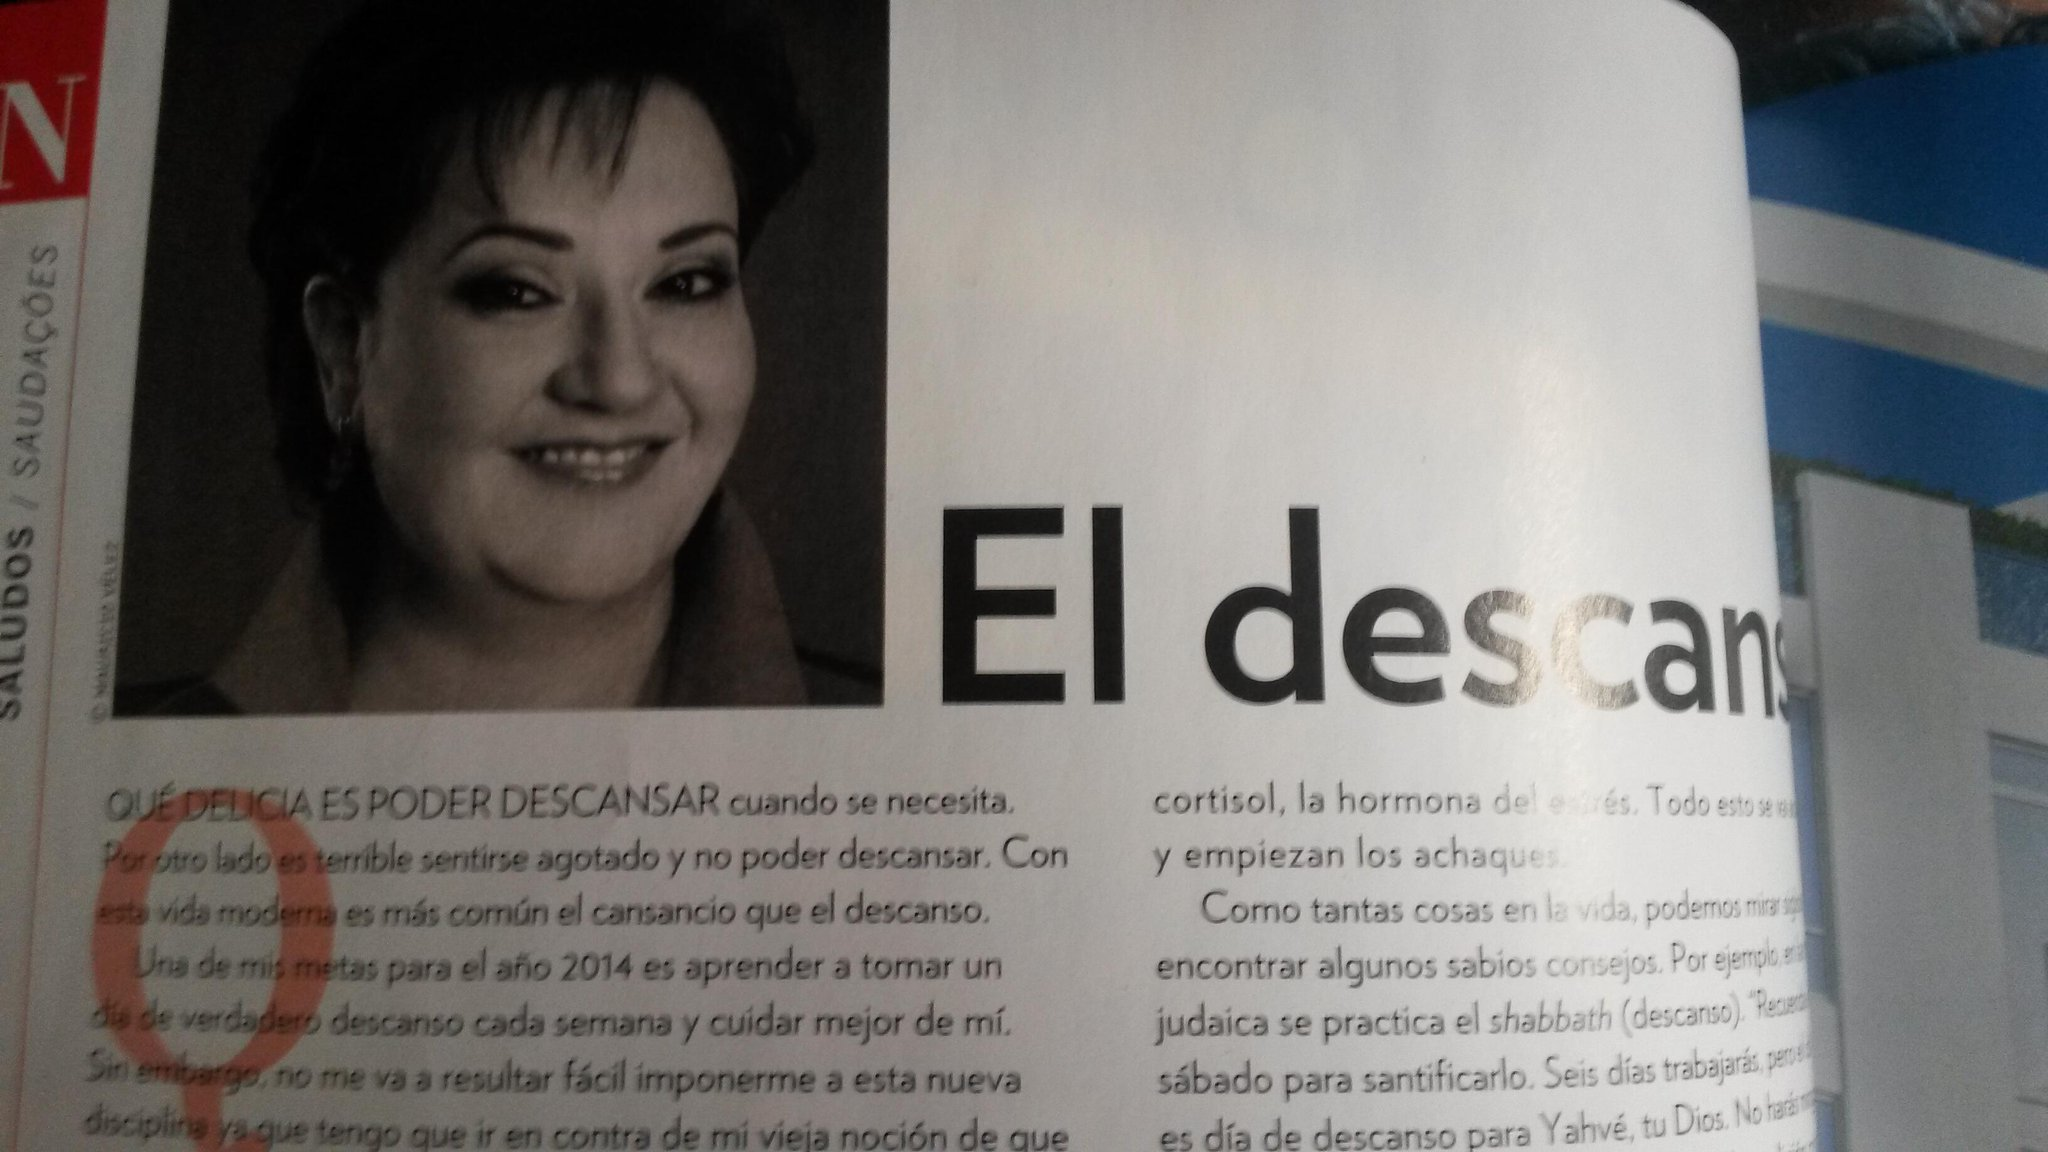 Scary!!!! RT @philytaggart: Check it out. I found the Mexican @reallorraine in the in flight magazine. http://t.co/6lCGaY0cVN